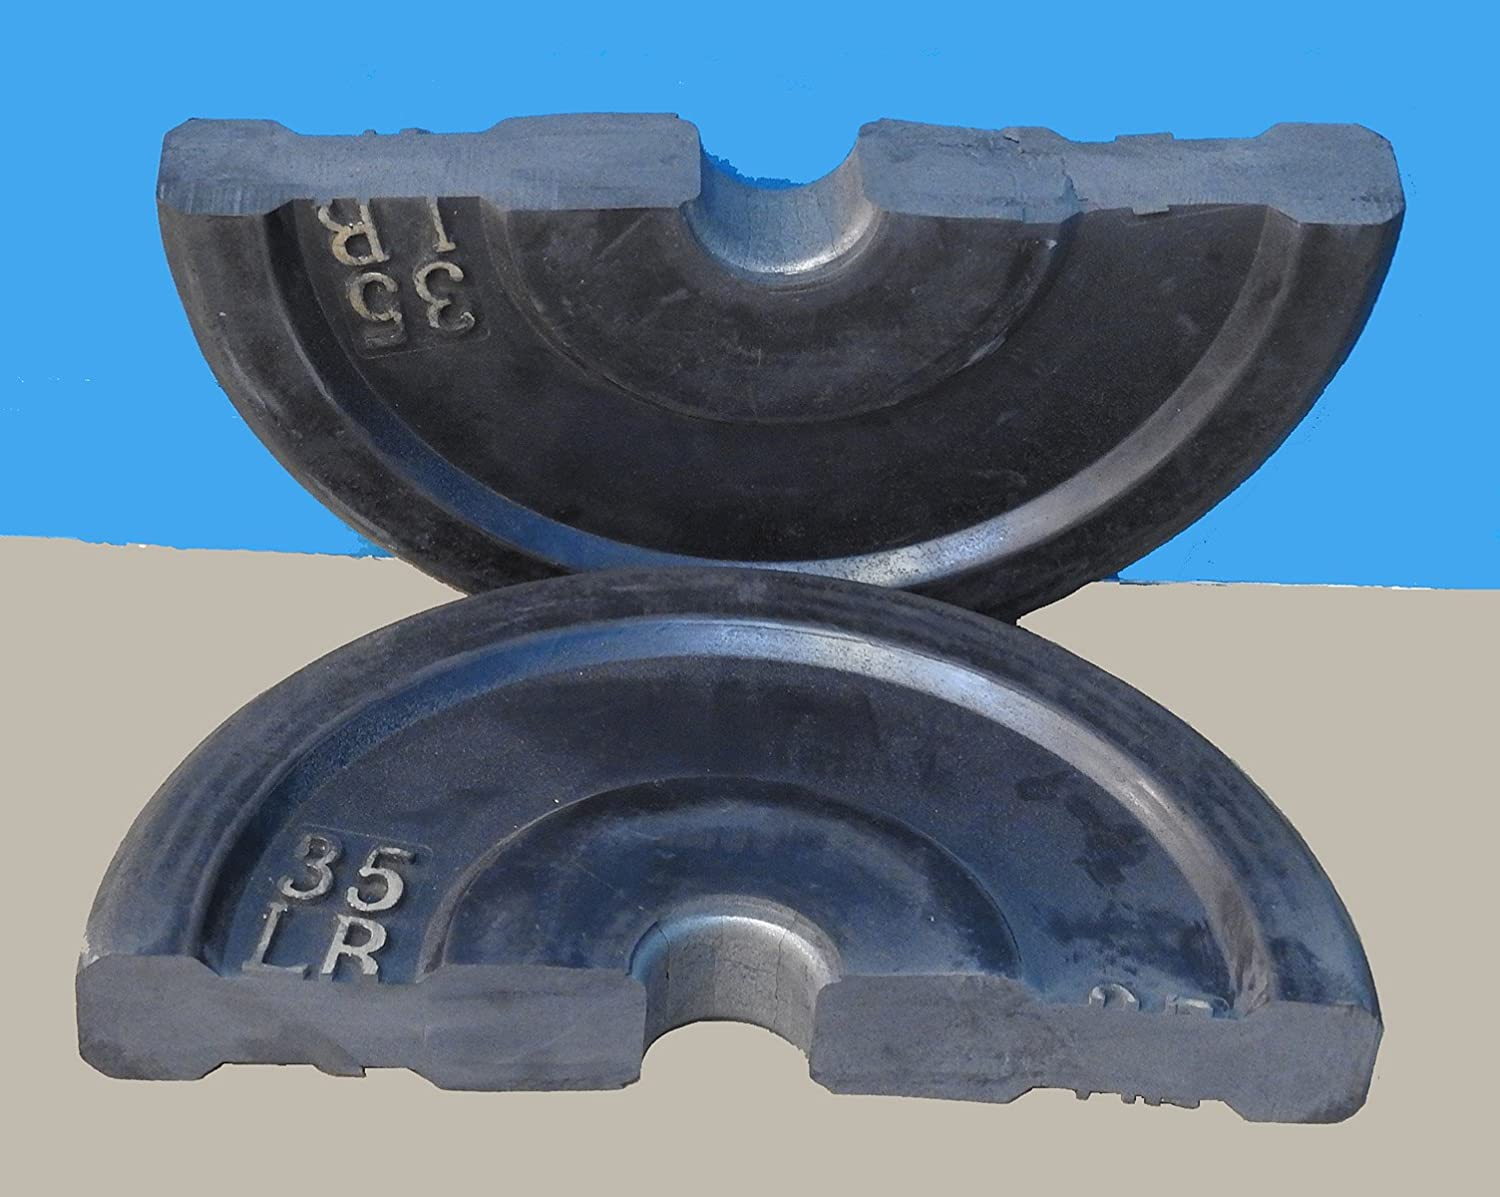 TDS 70lbs 2 x 35lb Virgin All Rubber Bumper Plates. Designed for CrossFit workout and Fitness Training. Purpose of placing Steel plates inside is only to reduce production costs, will split soon.